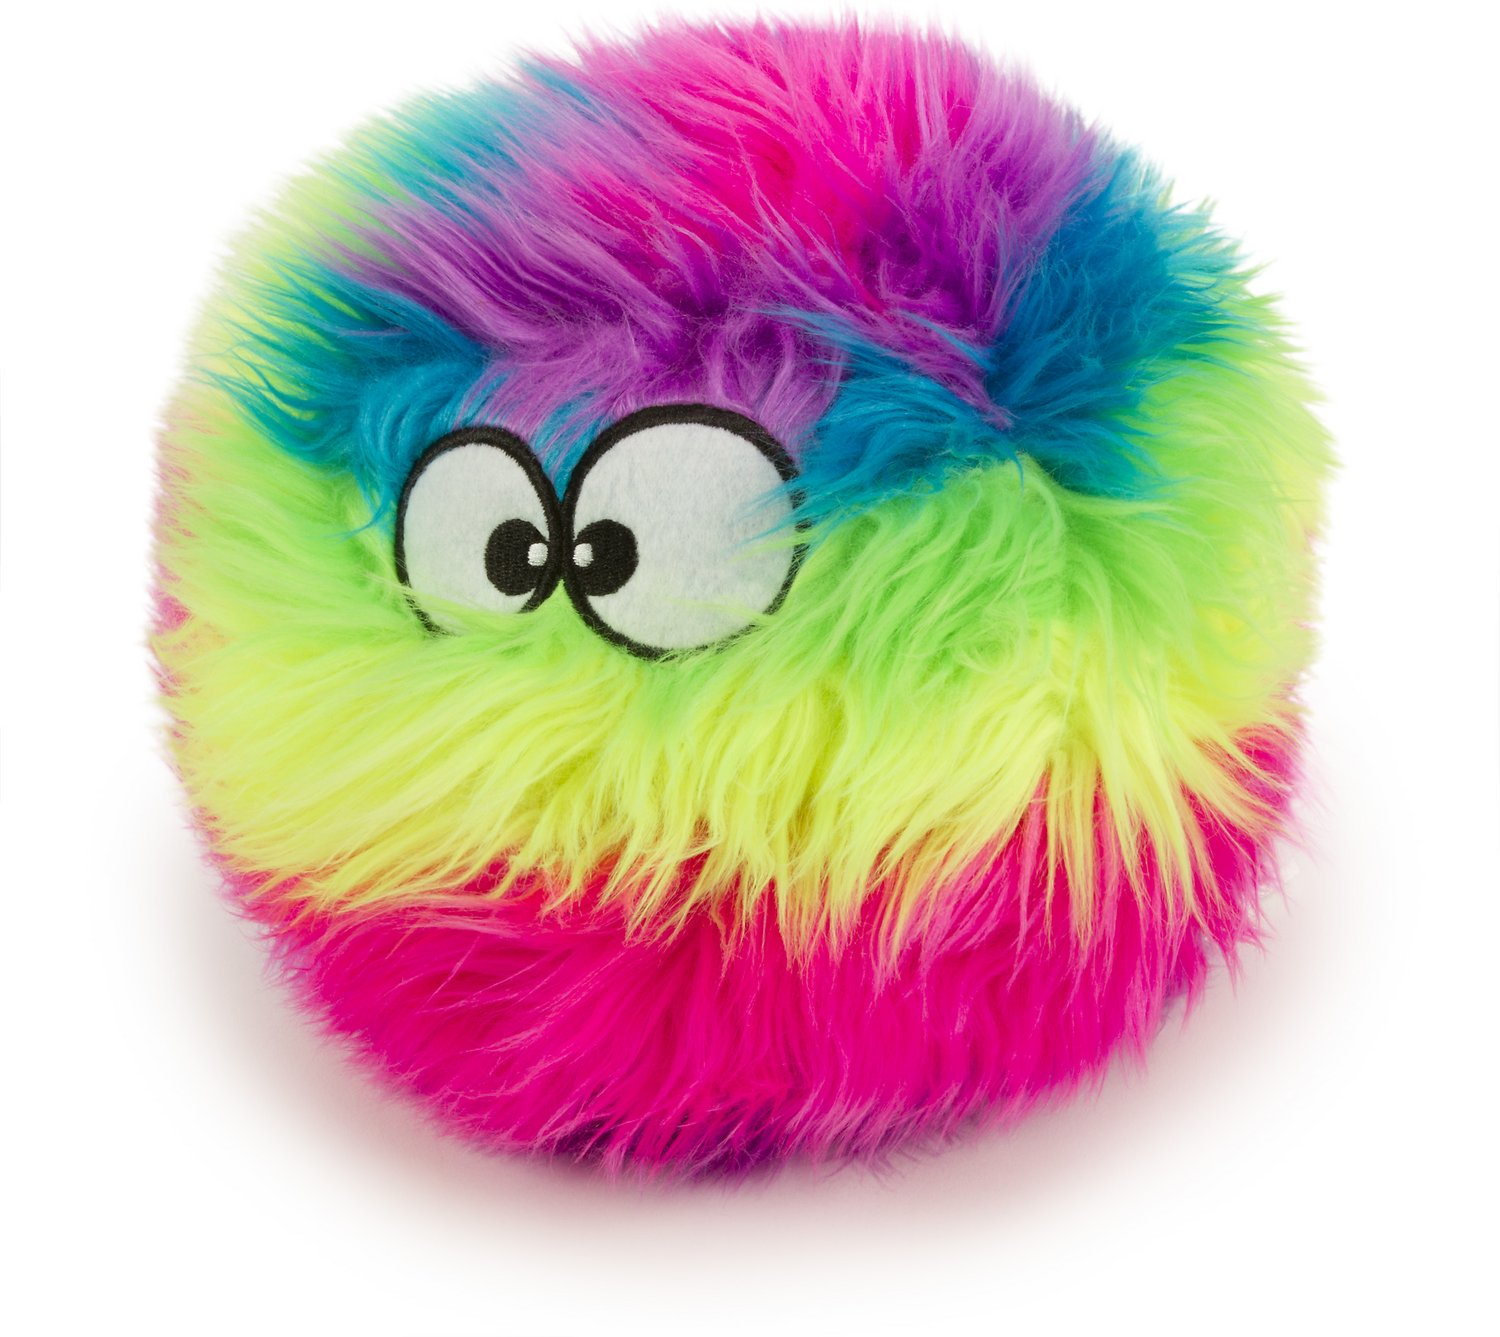 GoDog Furballz Chew Guard Dog Toy, Rainbow Image